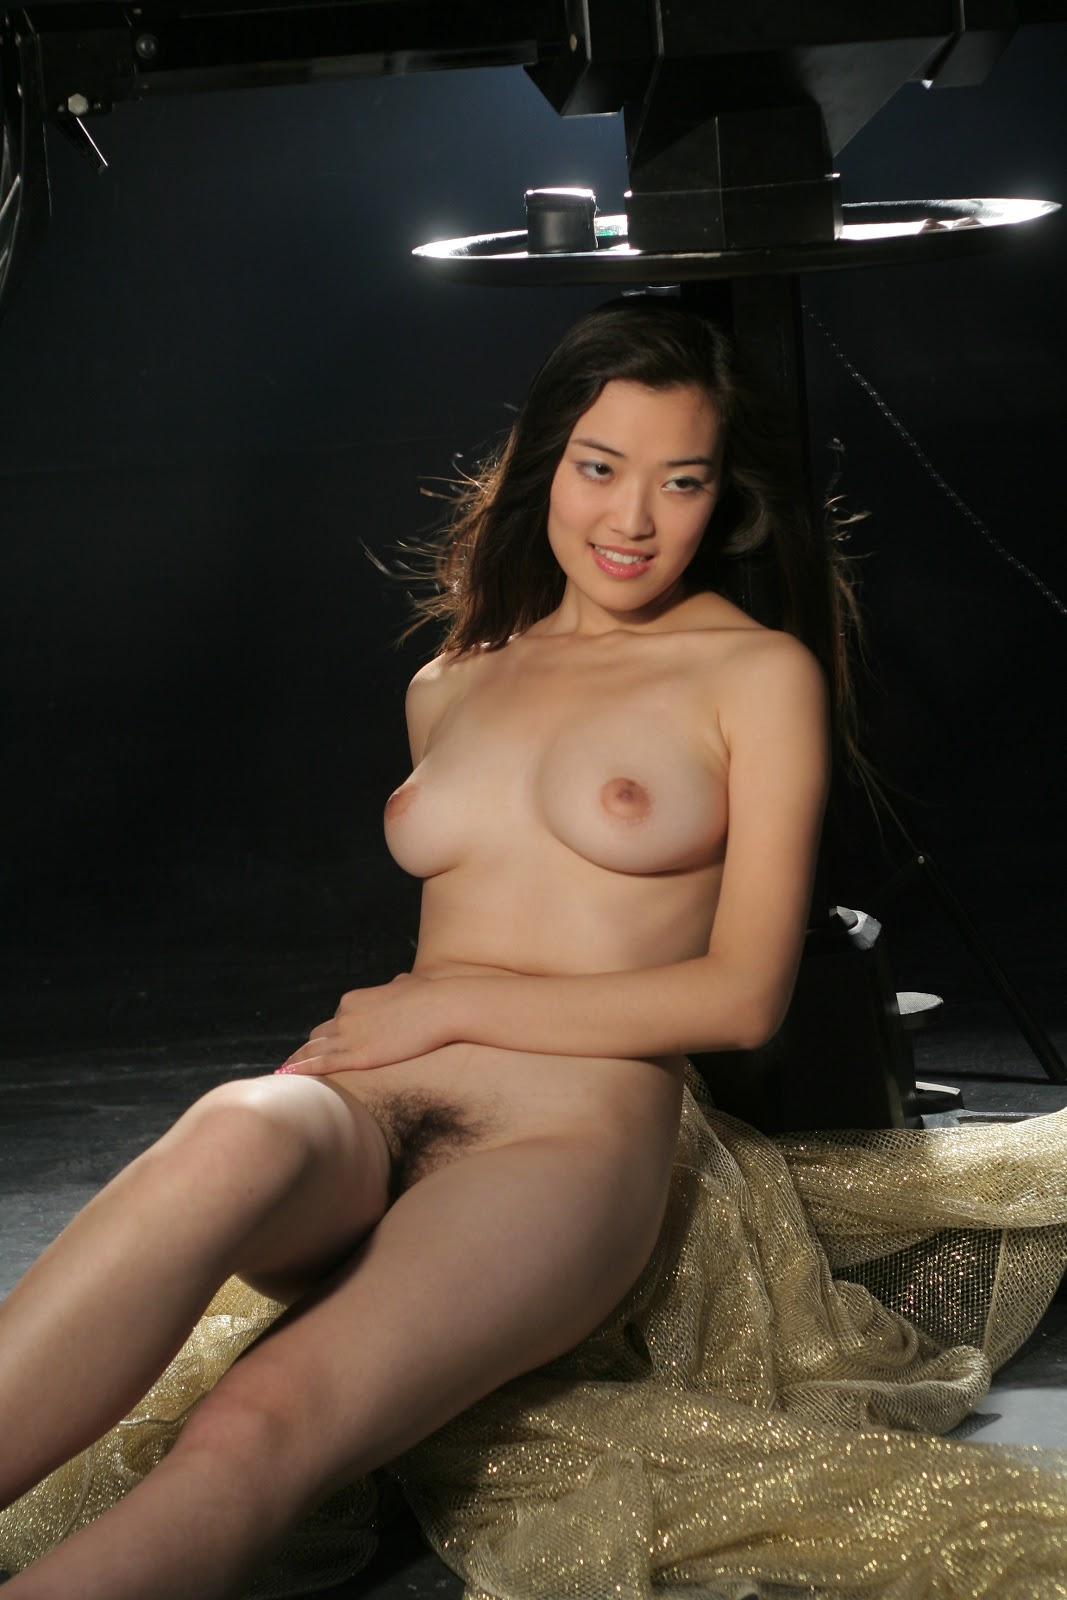 Chinese Nude_Art_Photos_-_243_-_XiaoYou_Vol_2.rar Chinese_Nude_Art_Photos_-_243_-_XiaoYou_Vol_2.rar.DSC0553